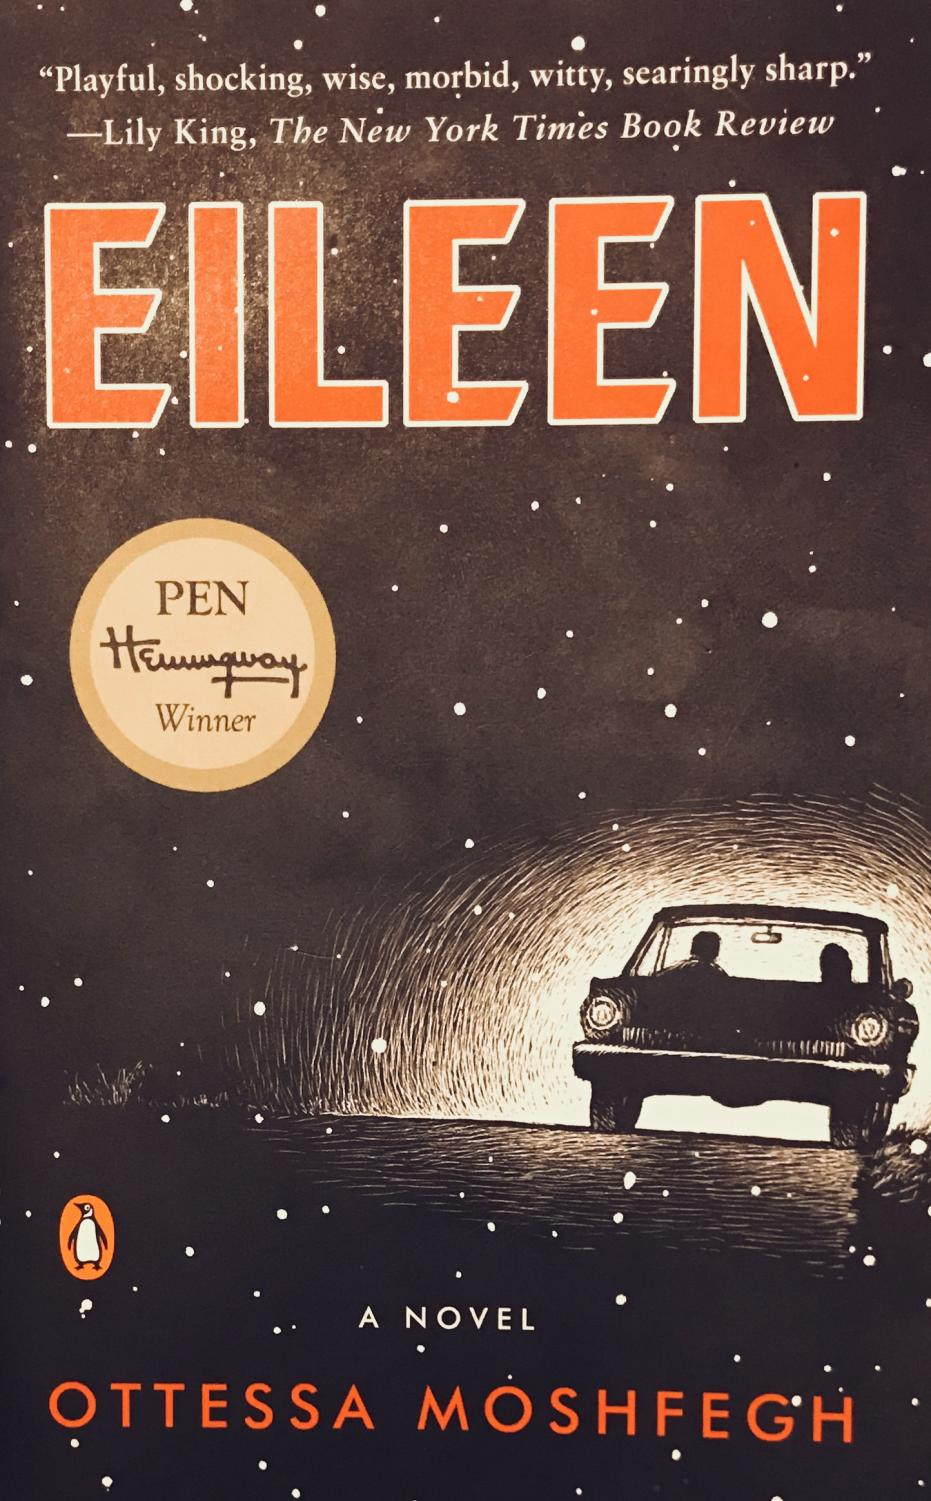 The cover of the book Eileen. Photo Credit: Fiona McAleer